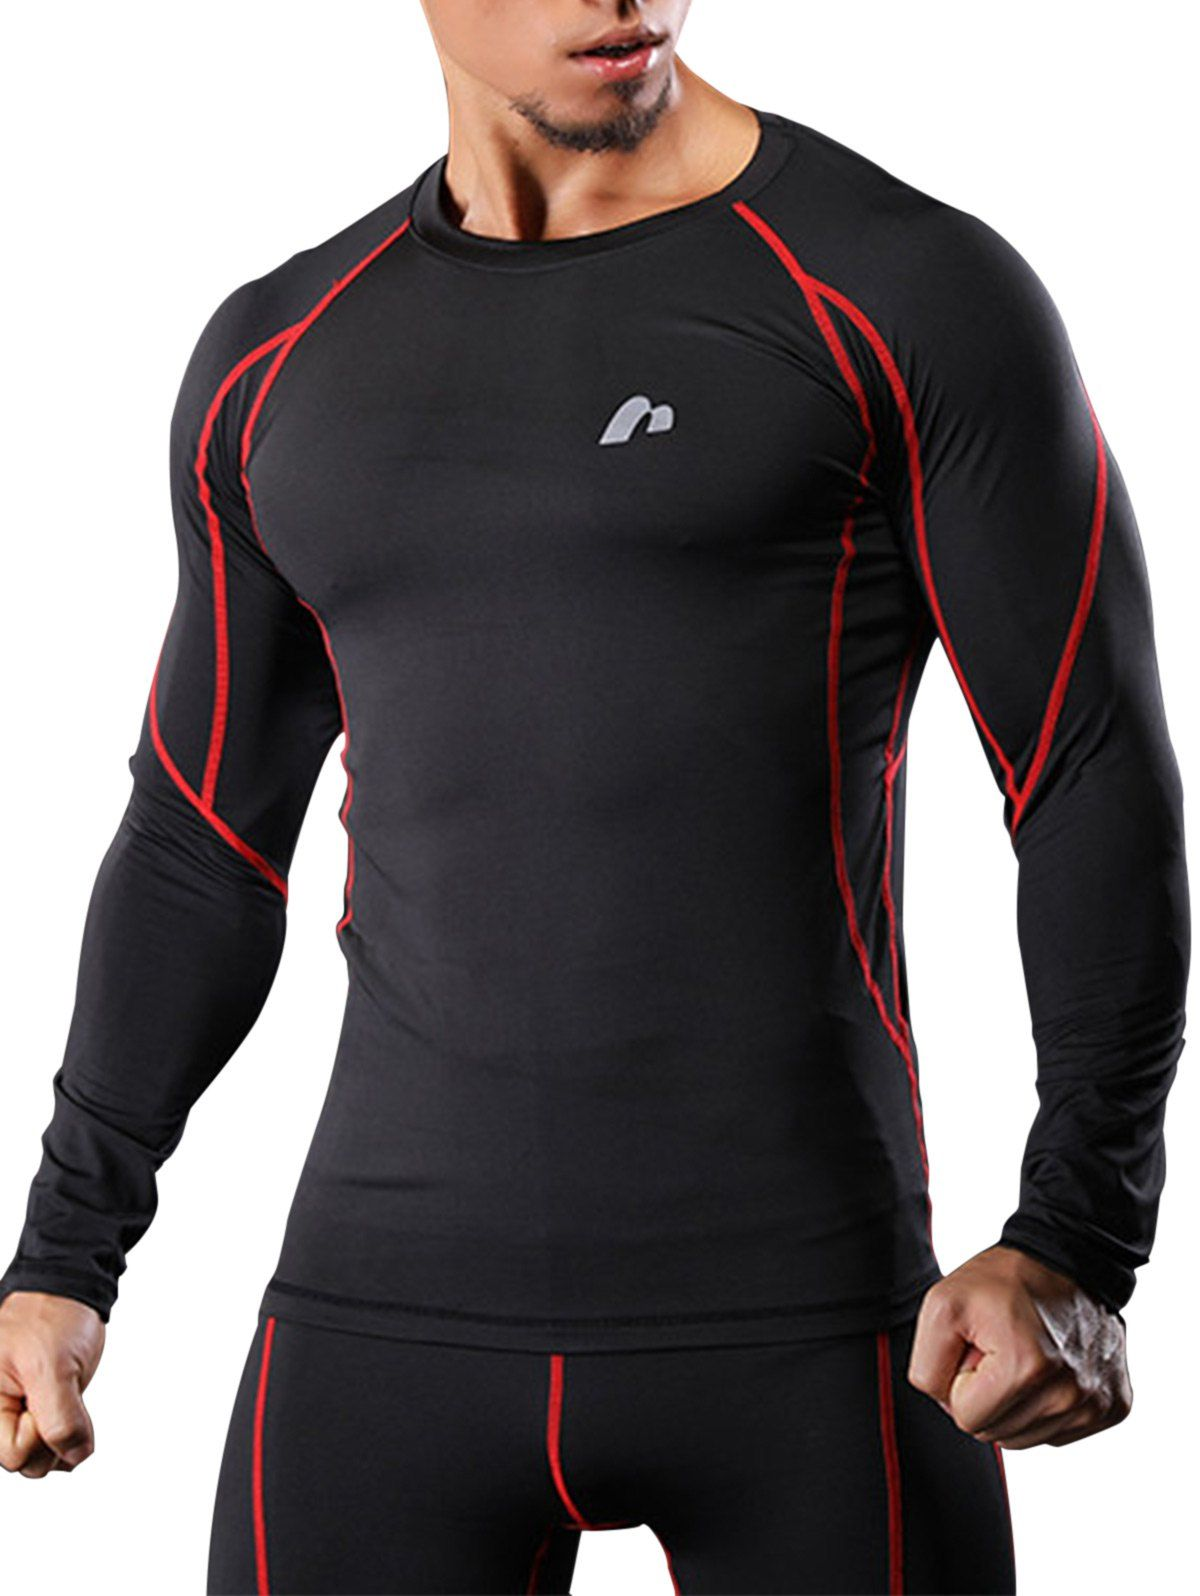 273b83e89 Cheap on Sale only 29$,buy Quick Dry Stretchy Sports Gym T-shirt in online  worldwide Store.Wide selection of Activewear.All time on Sale!